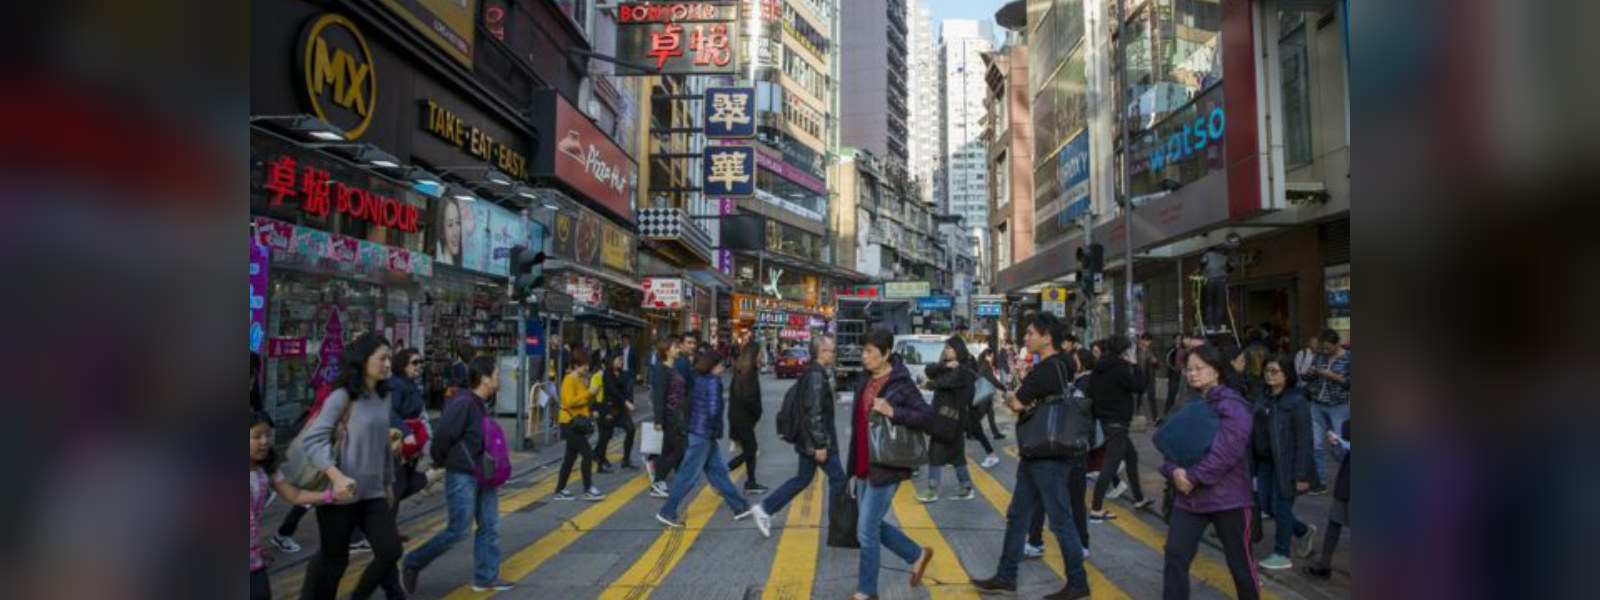 Tour guides see worst business in Hong Kong